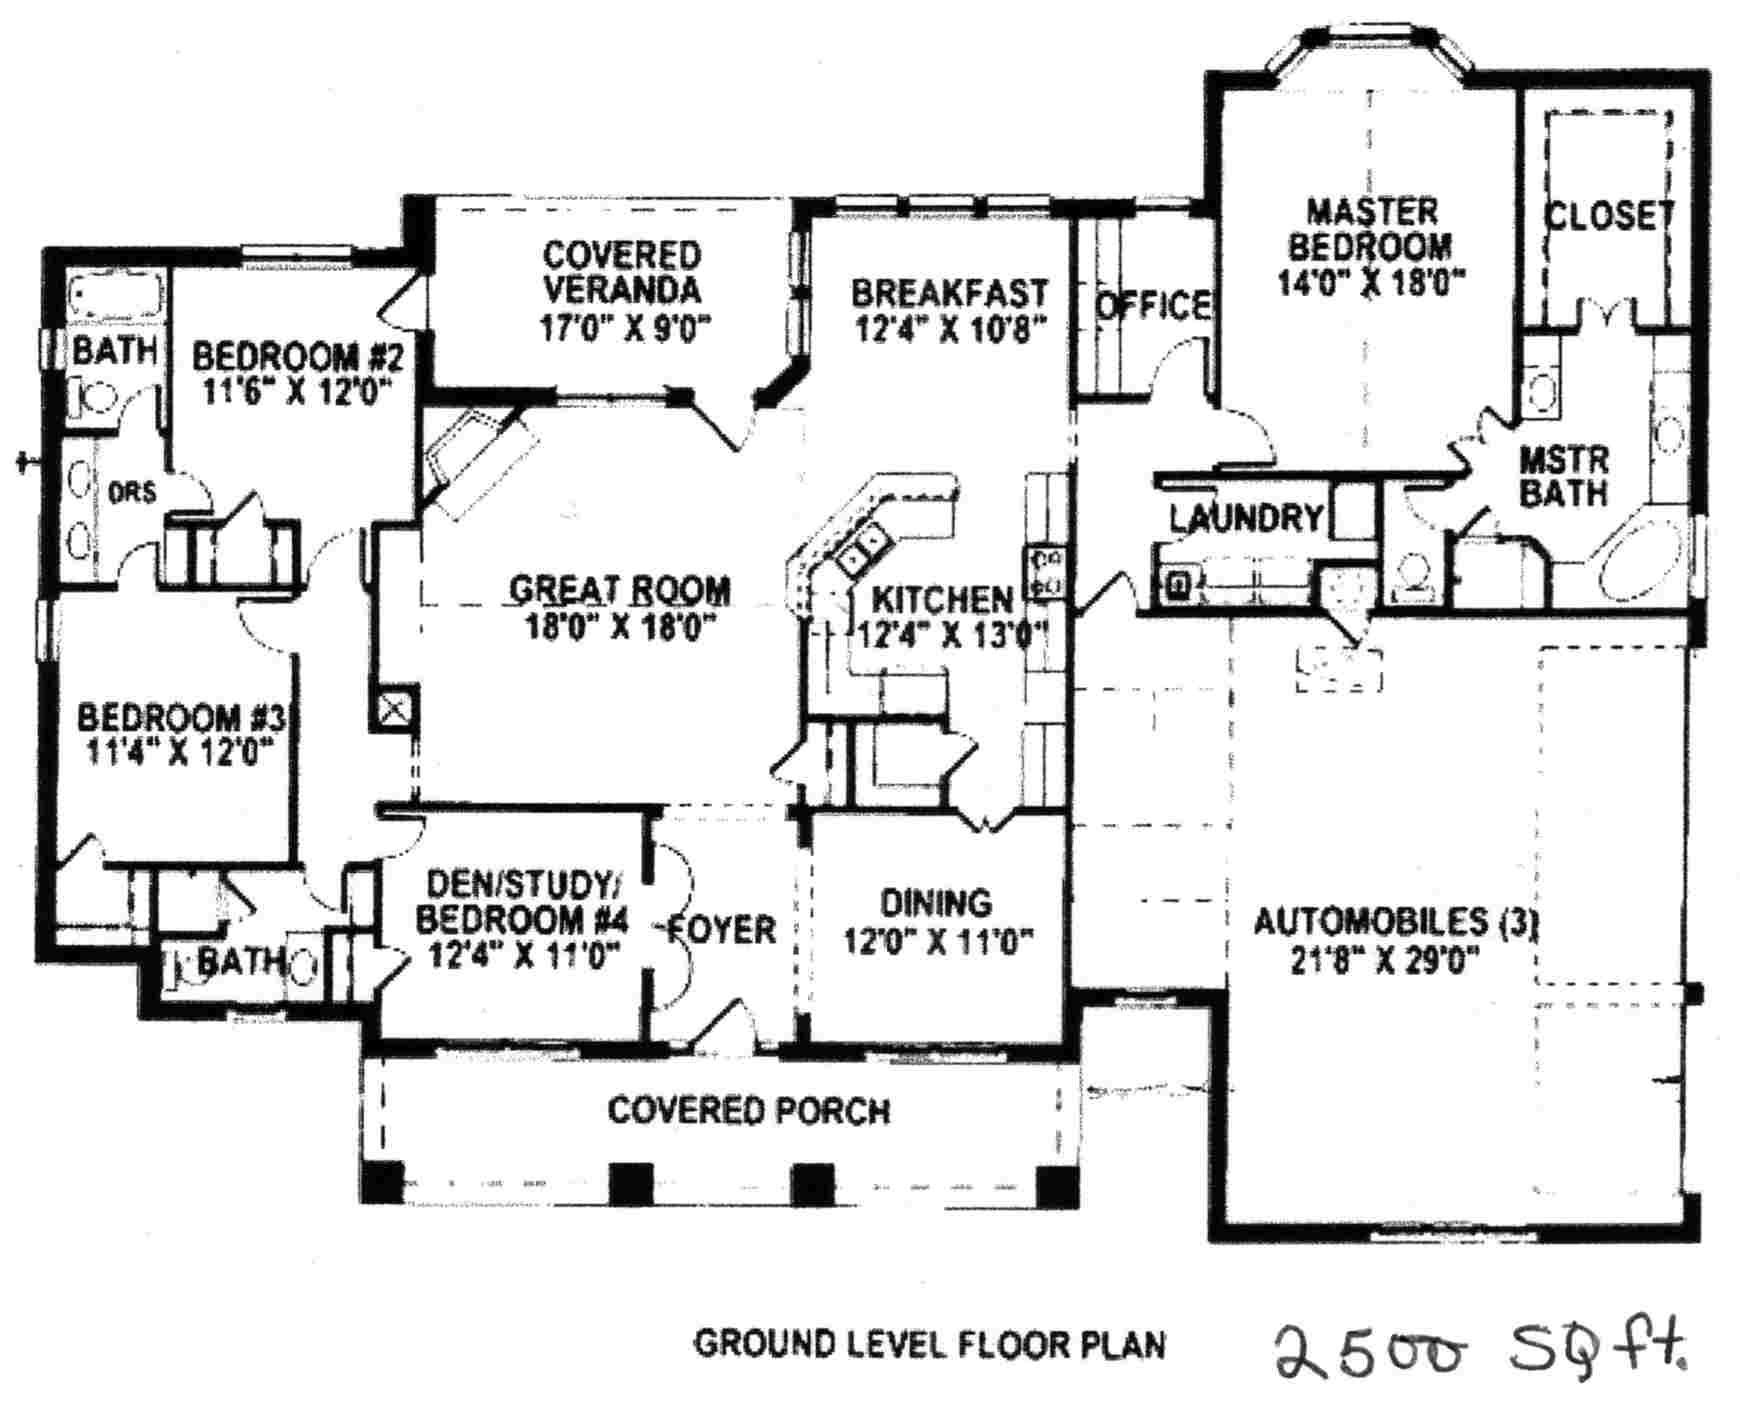 2500 sq ft house plans peltier builders inc about us for Floor plans 2500 square feet